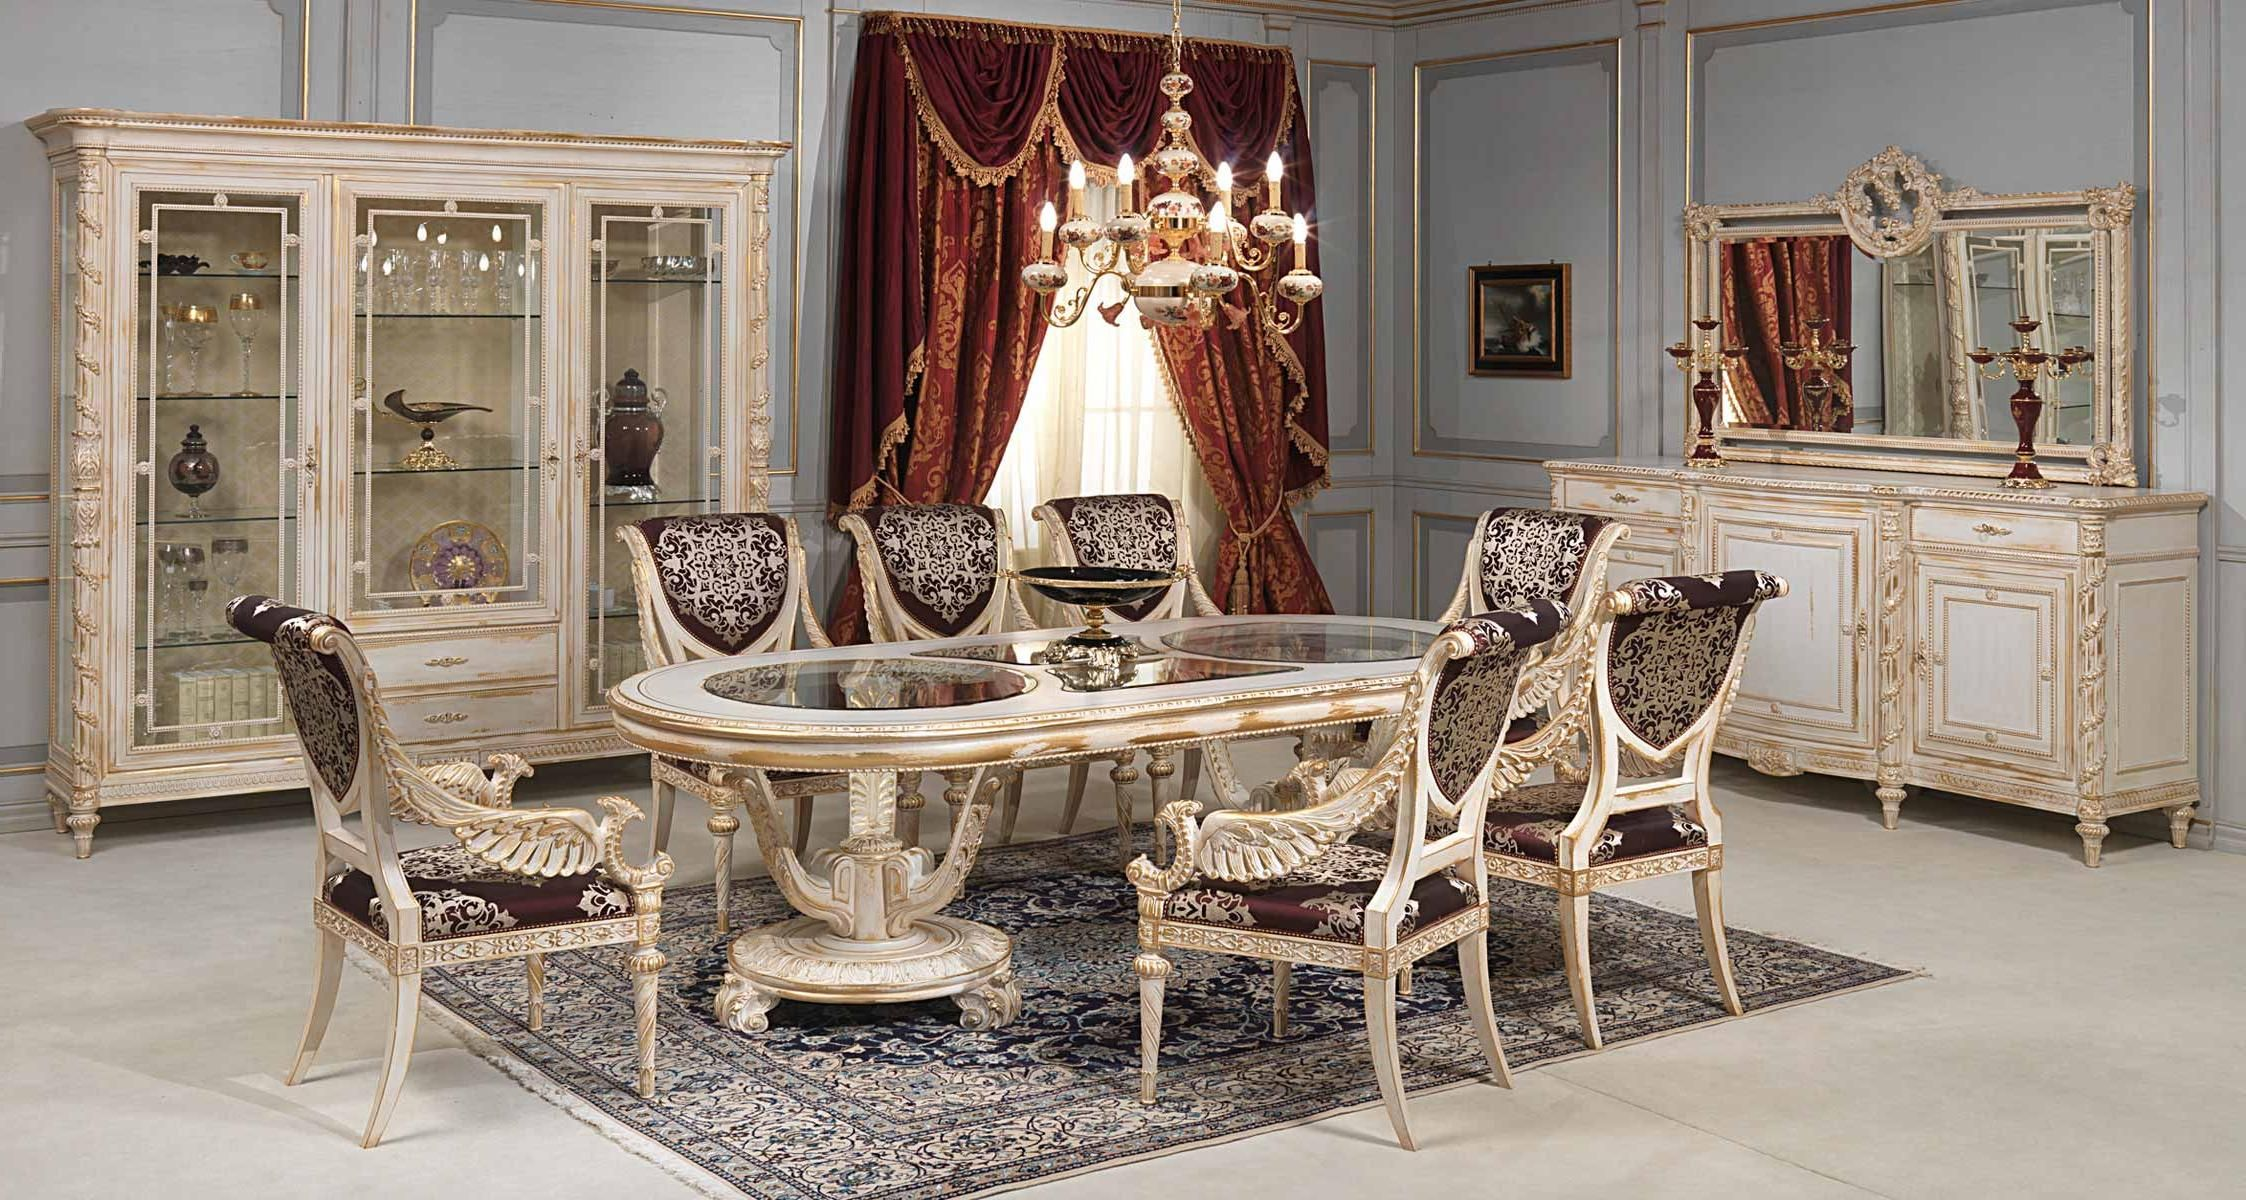 Dining room table the fabulous furniture drawhome com